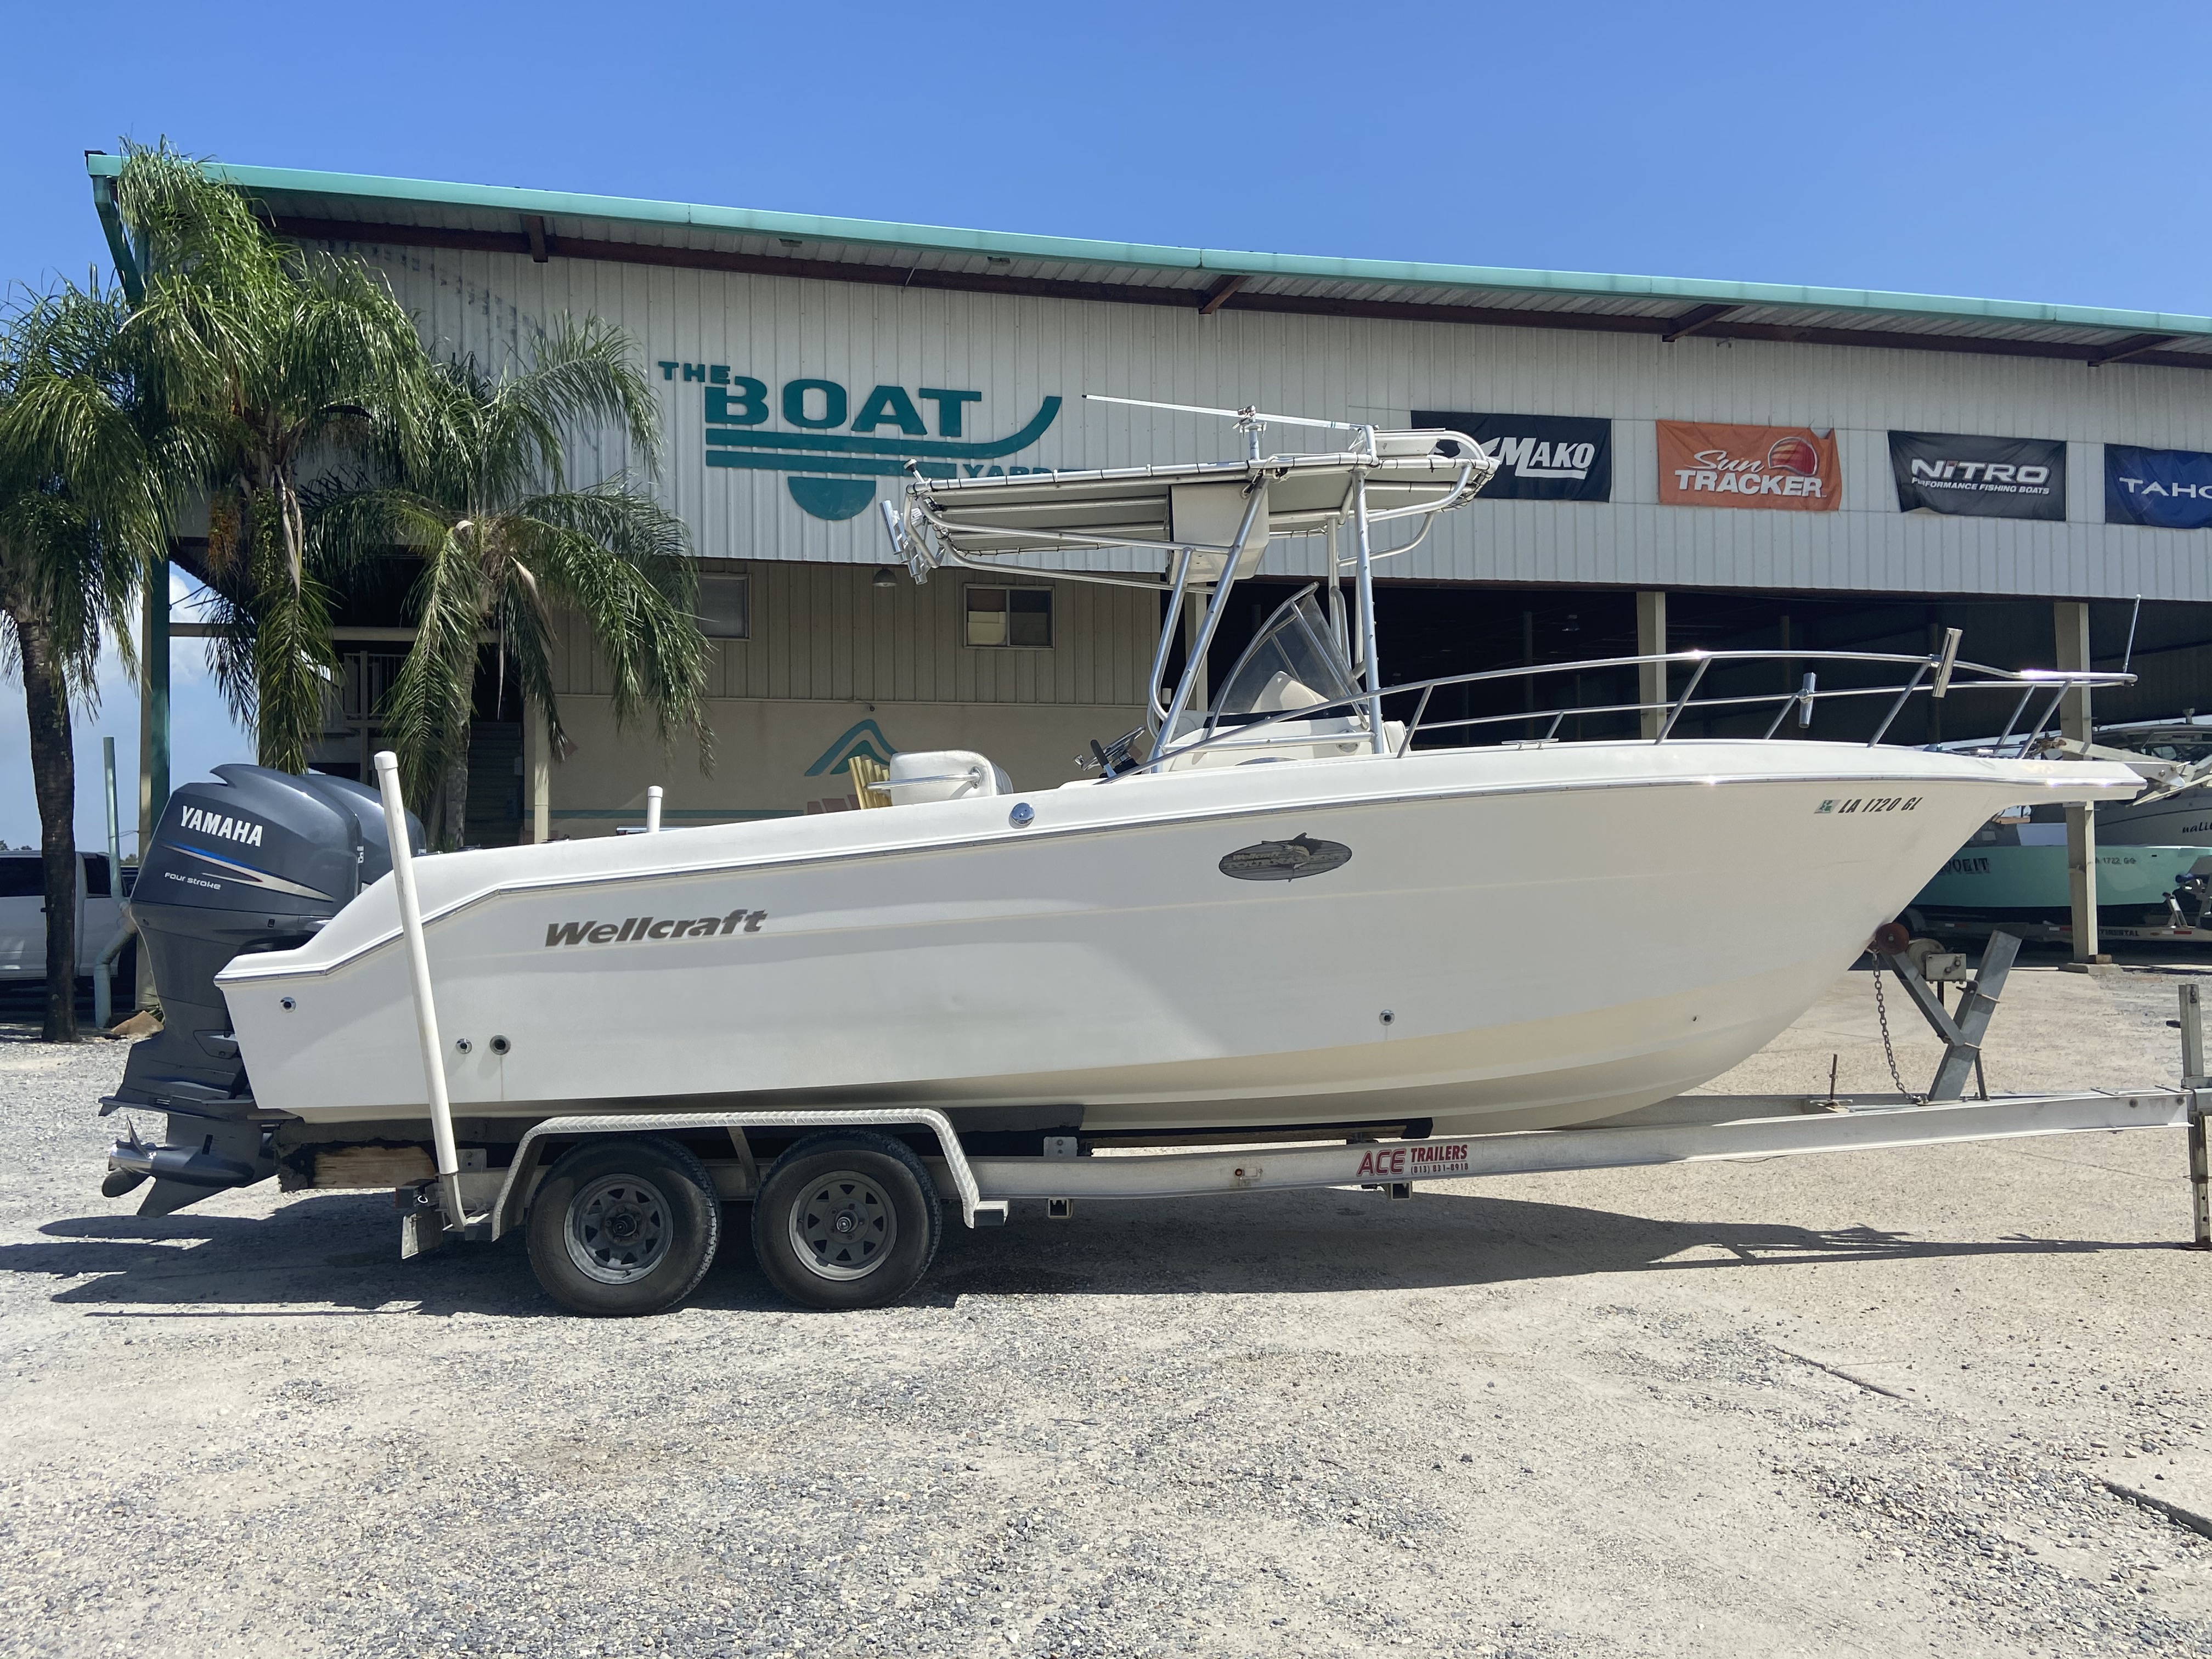 2002 Wellcraft boat for sale, model of the boat is 230 & Image # 1 of 14